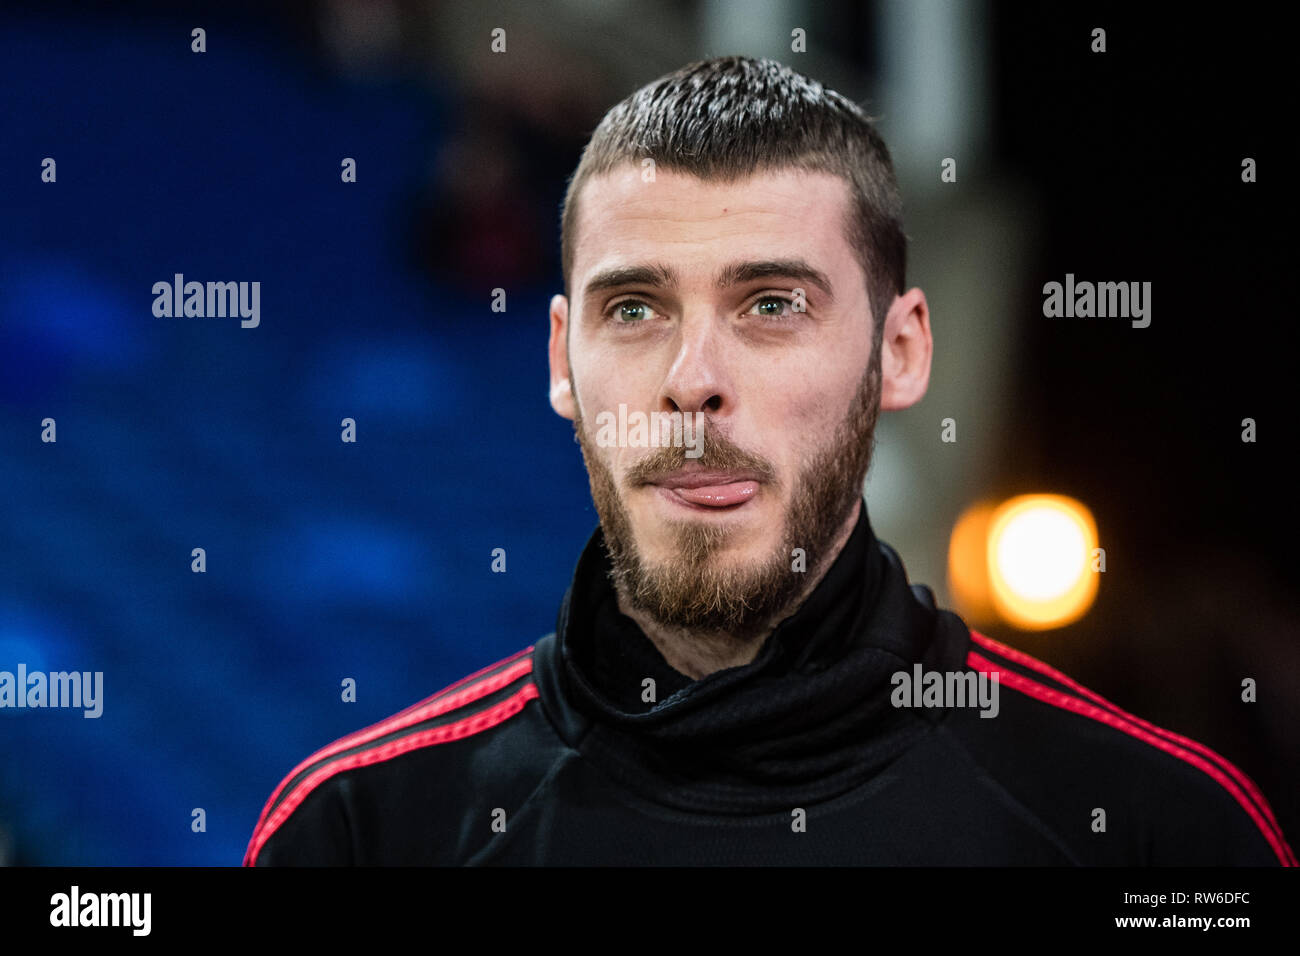 LONDON, ENGLAND - FEBRUARY 27: David de Gea of Manchester United looks on during the Premier League match between Crystal Palace and Manchester United - Stock Image